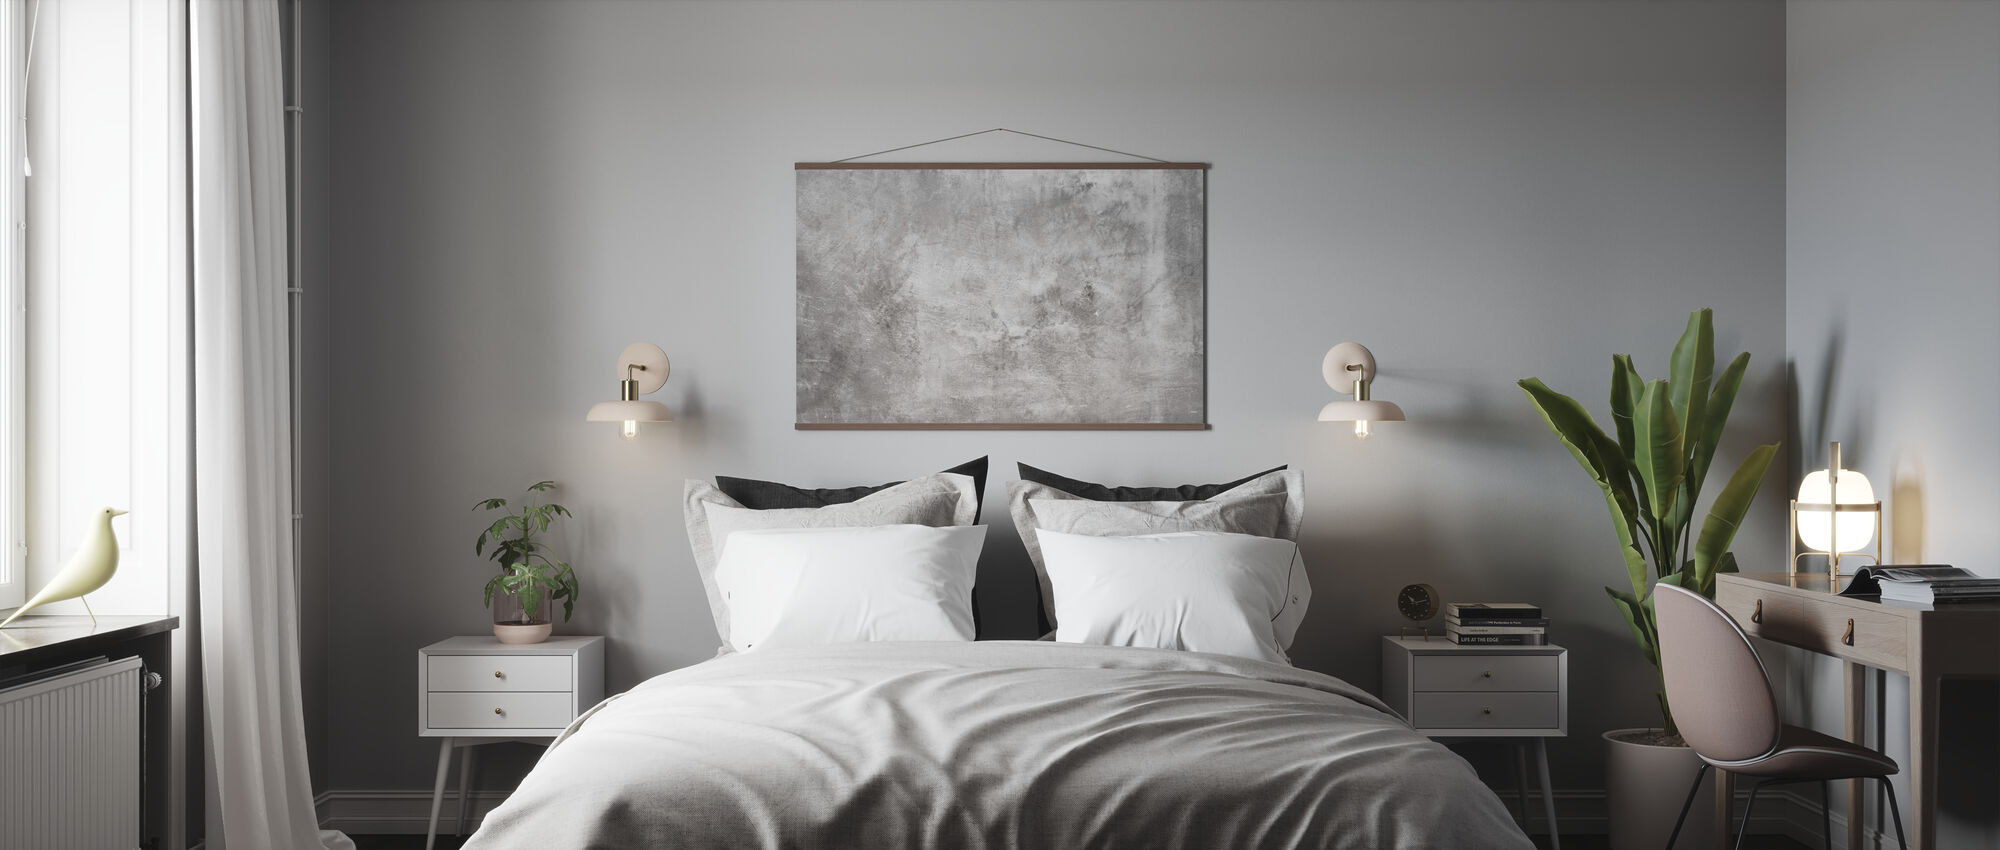 Grungy Rough Concrete Wall - Poster - Bedroom